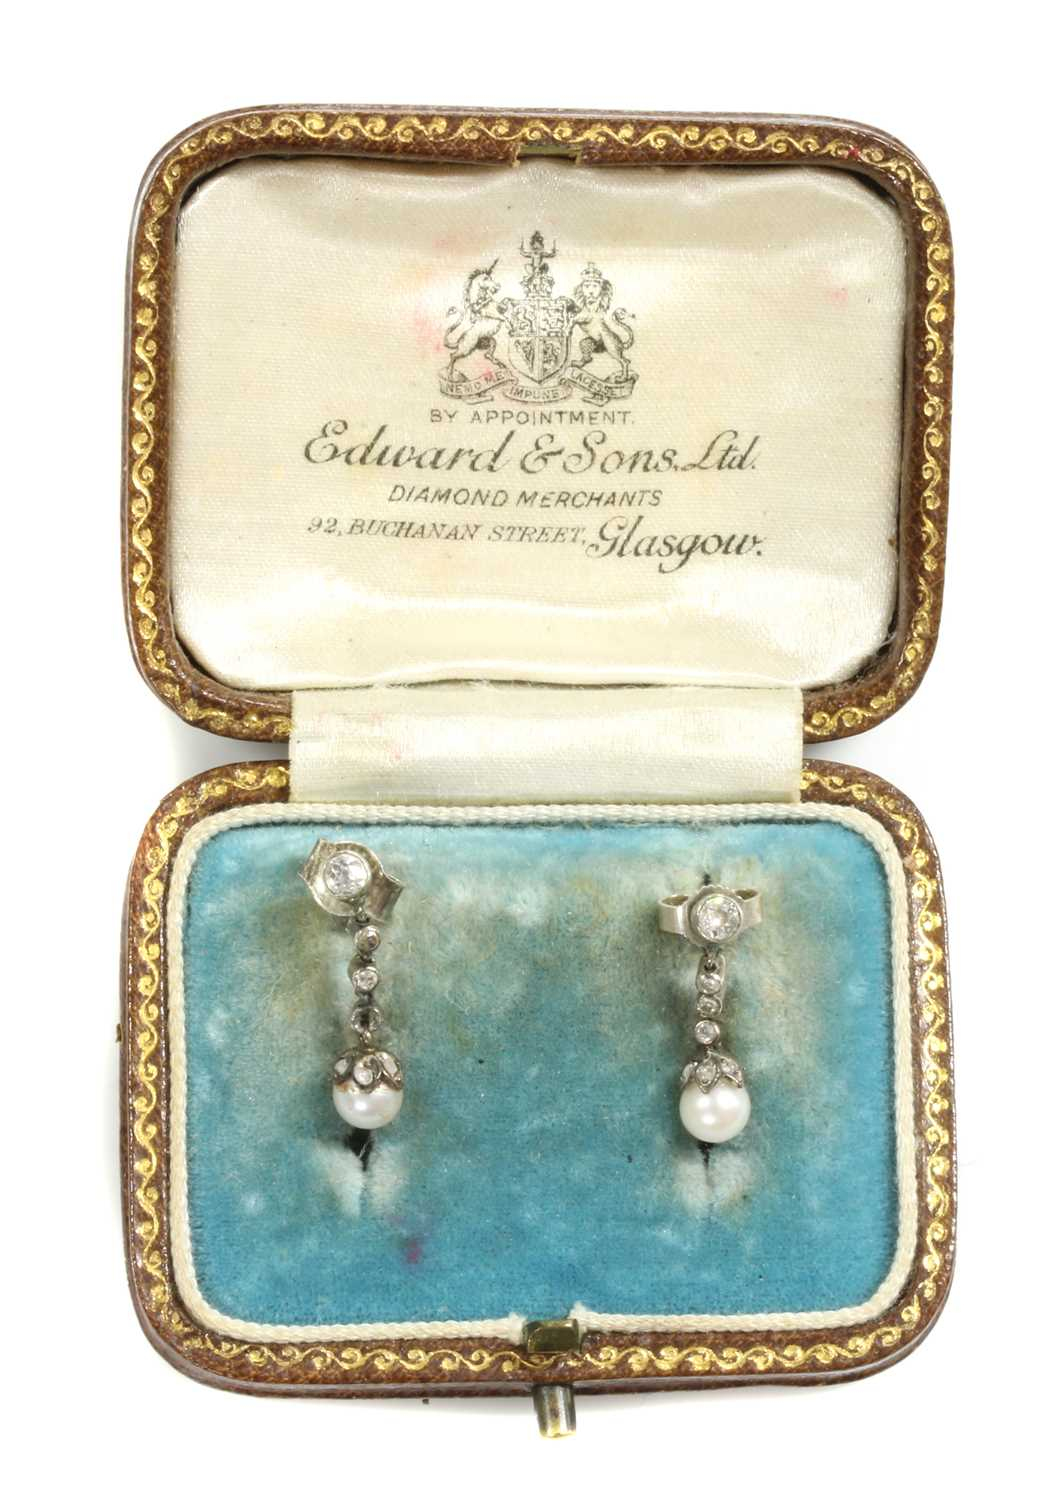 A cased pair of early 20th century pearl and diamond drop earrings, - Image 2 of 5